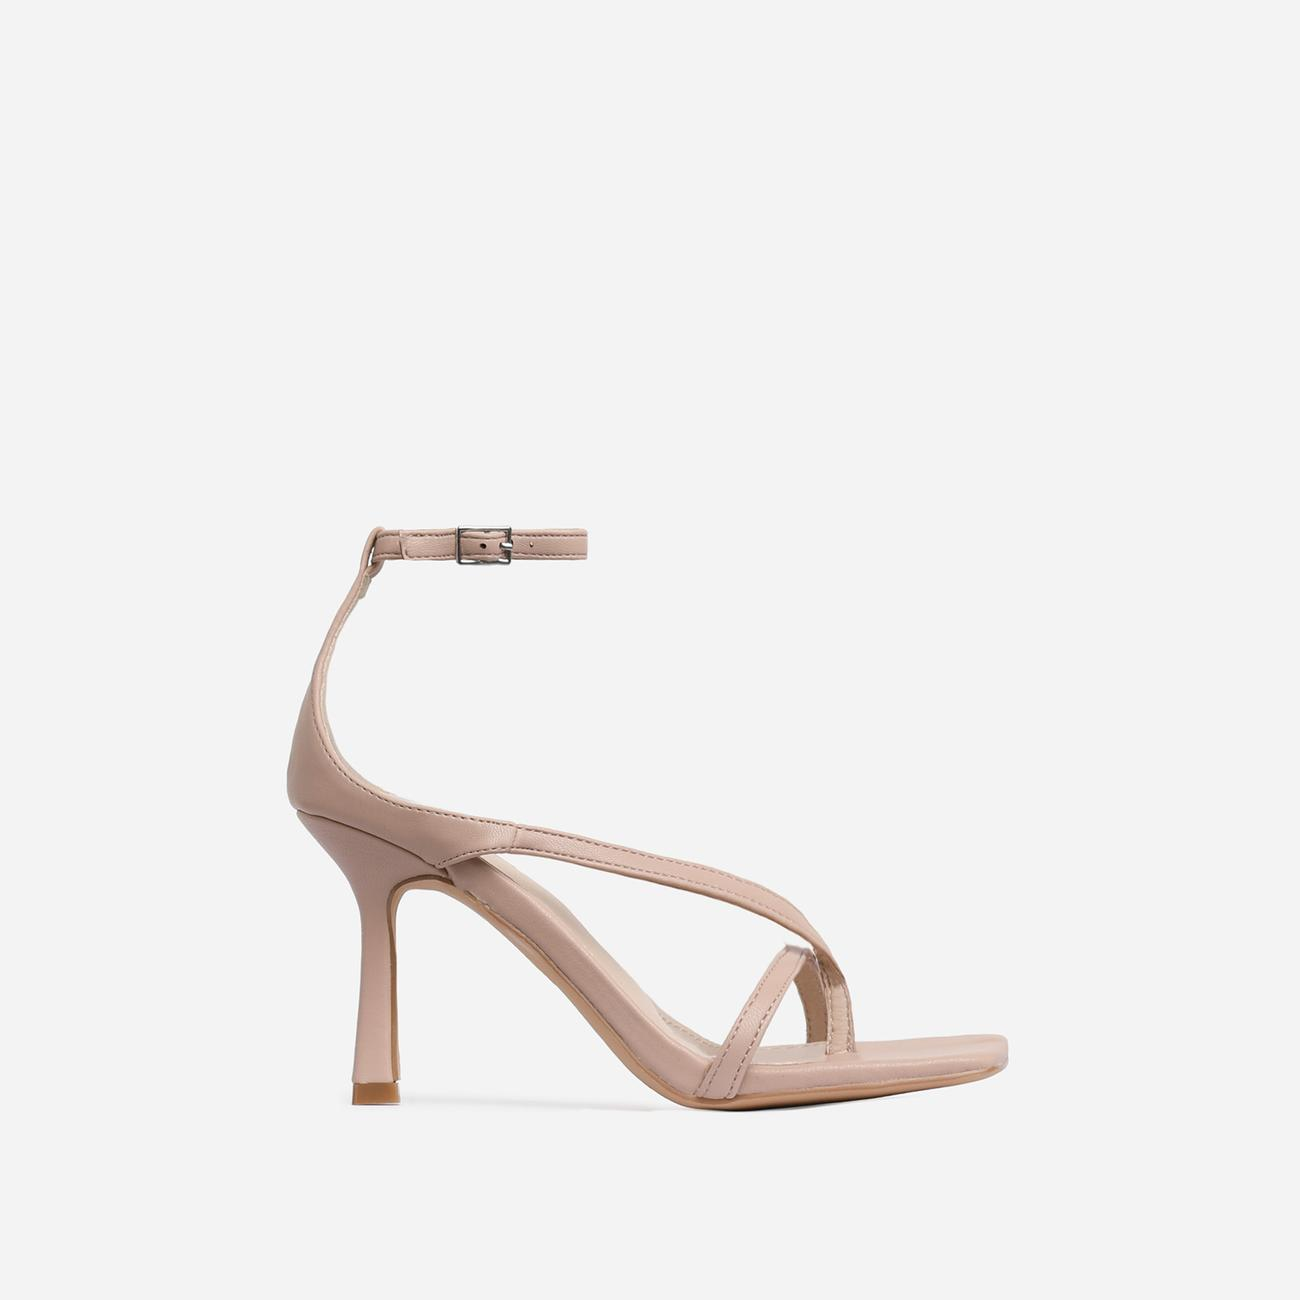 Eve Square Toe Strappy Heel In Nude Faux Leather Image 1